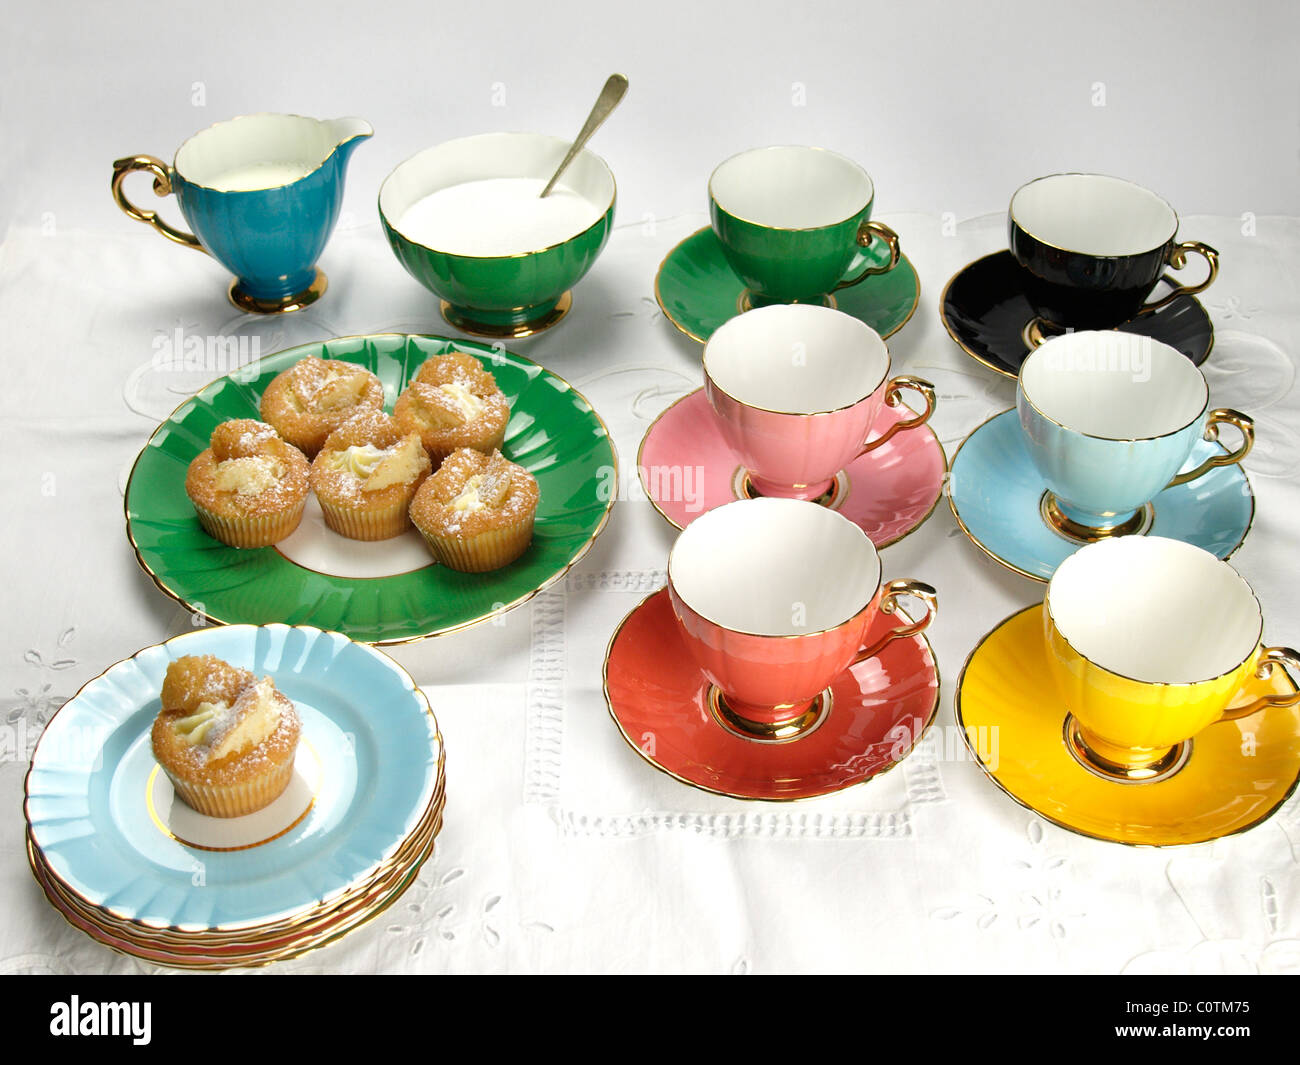 edwardian bone china 22 kt gold tea service stock photo royalty free image 34963465 alamy. Black Bedroom Furniture Sets. Home Design Ideas